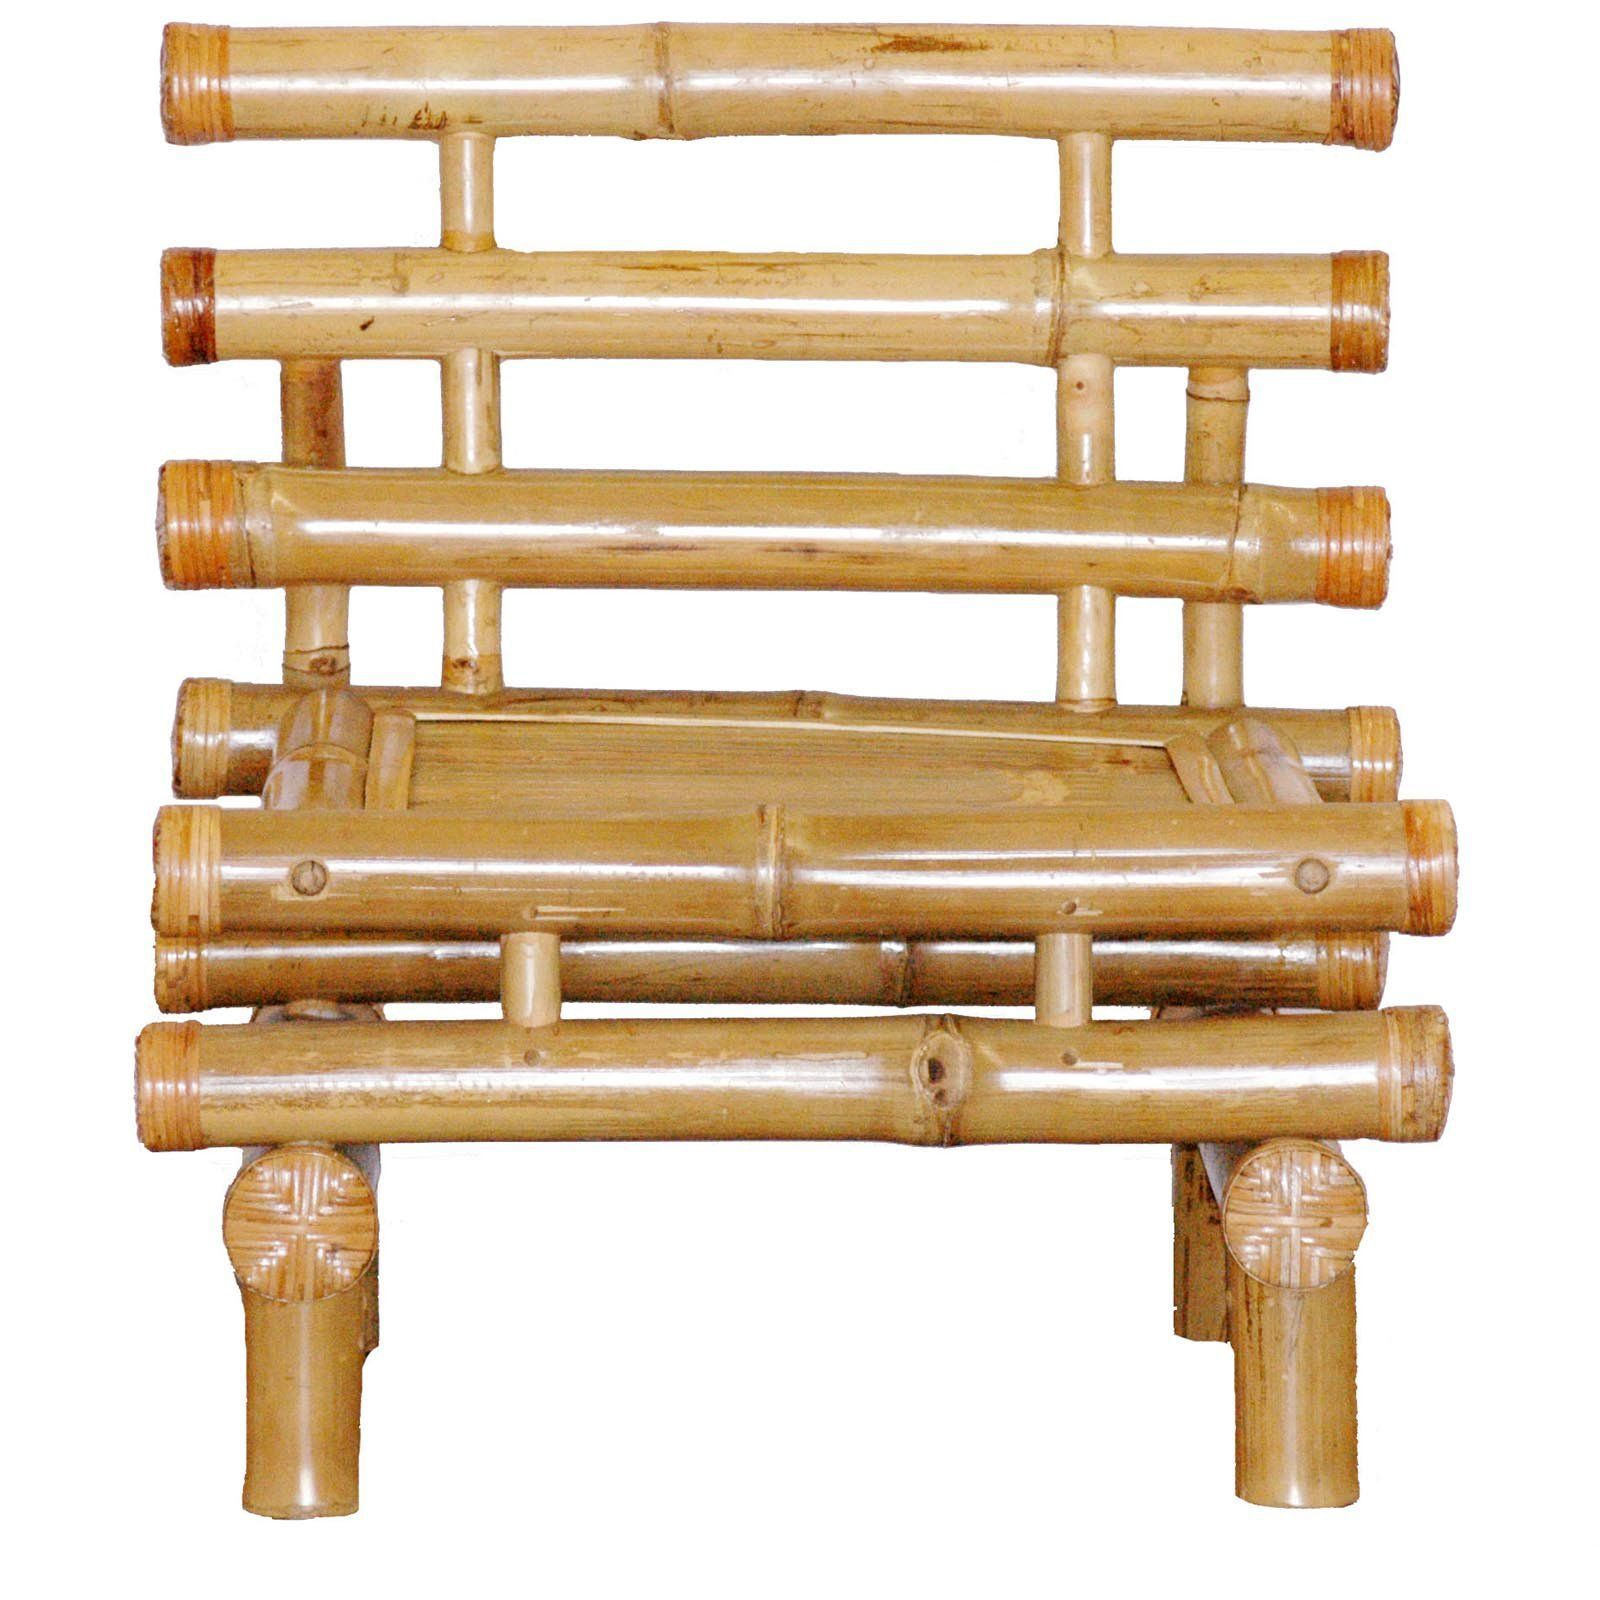 Outstanding Bamboo54 Kd Payang Big Bamboo Chair With Cushion 5437 Download Free Architecture Designs Scobabritishbridgeorg